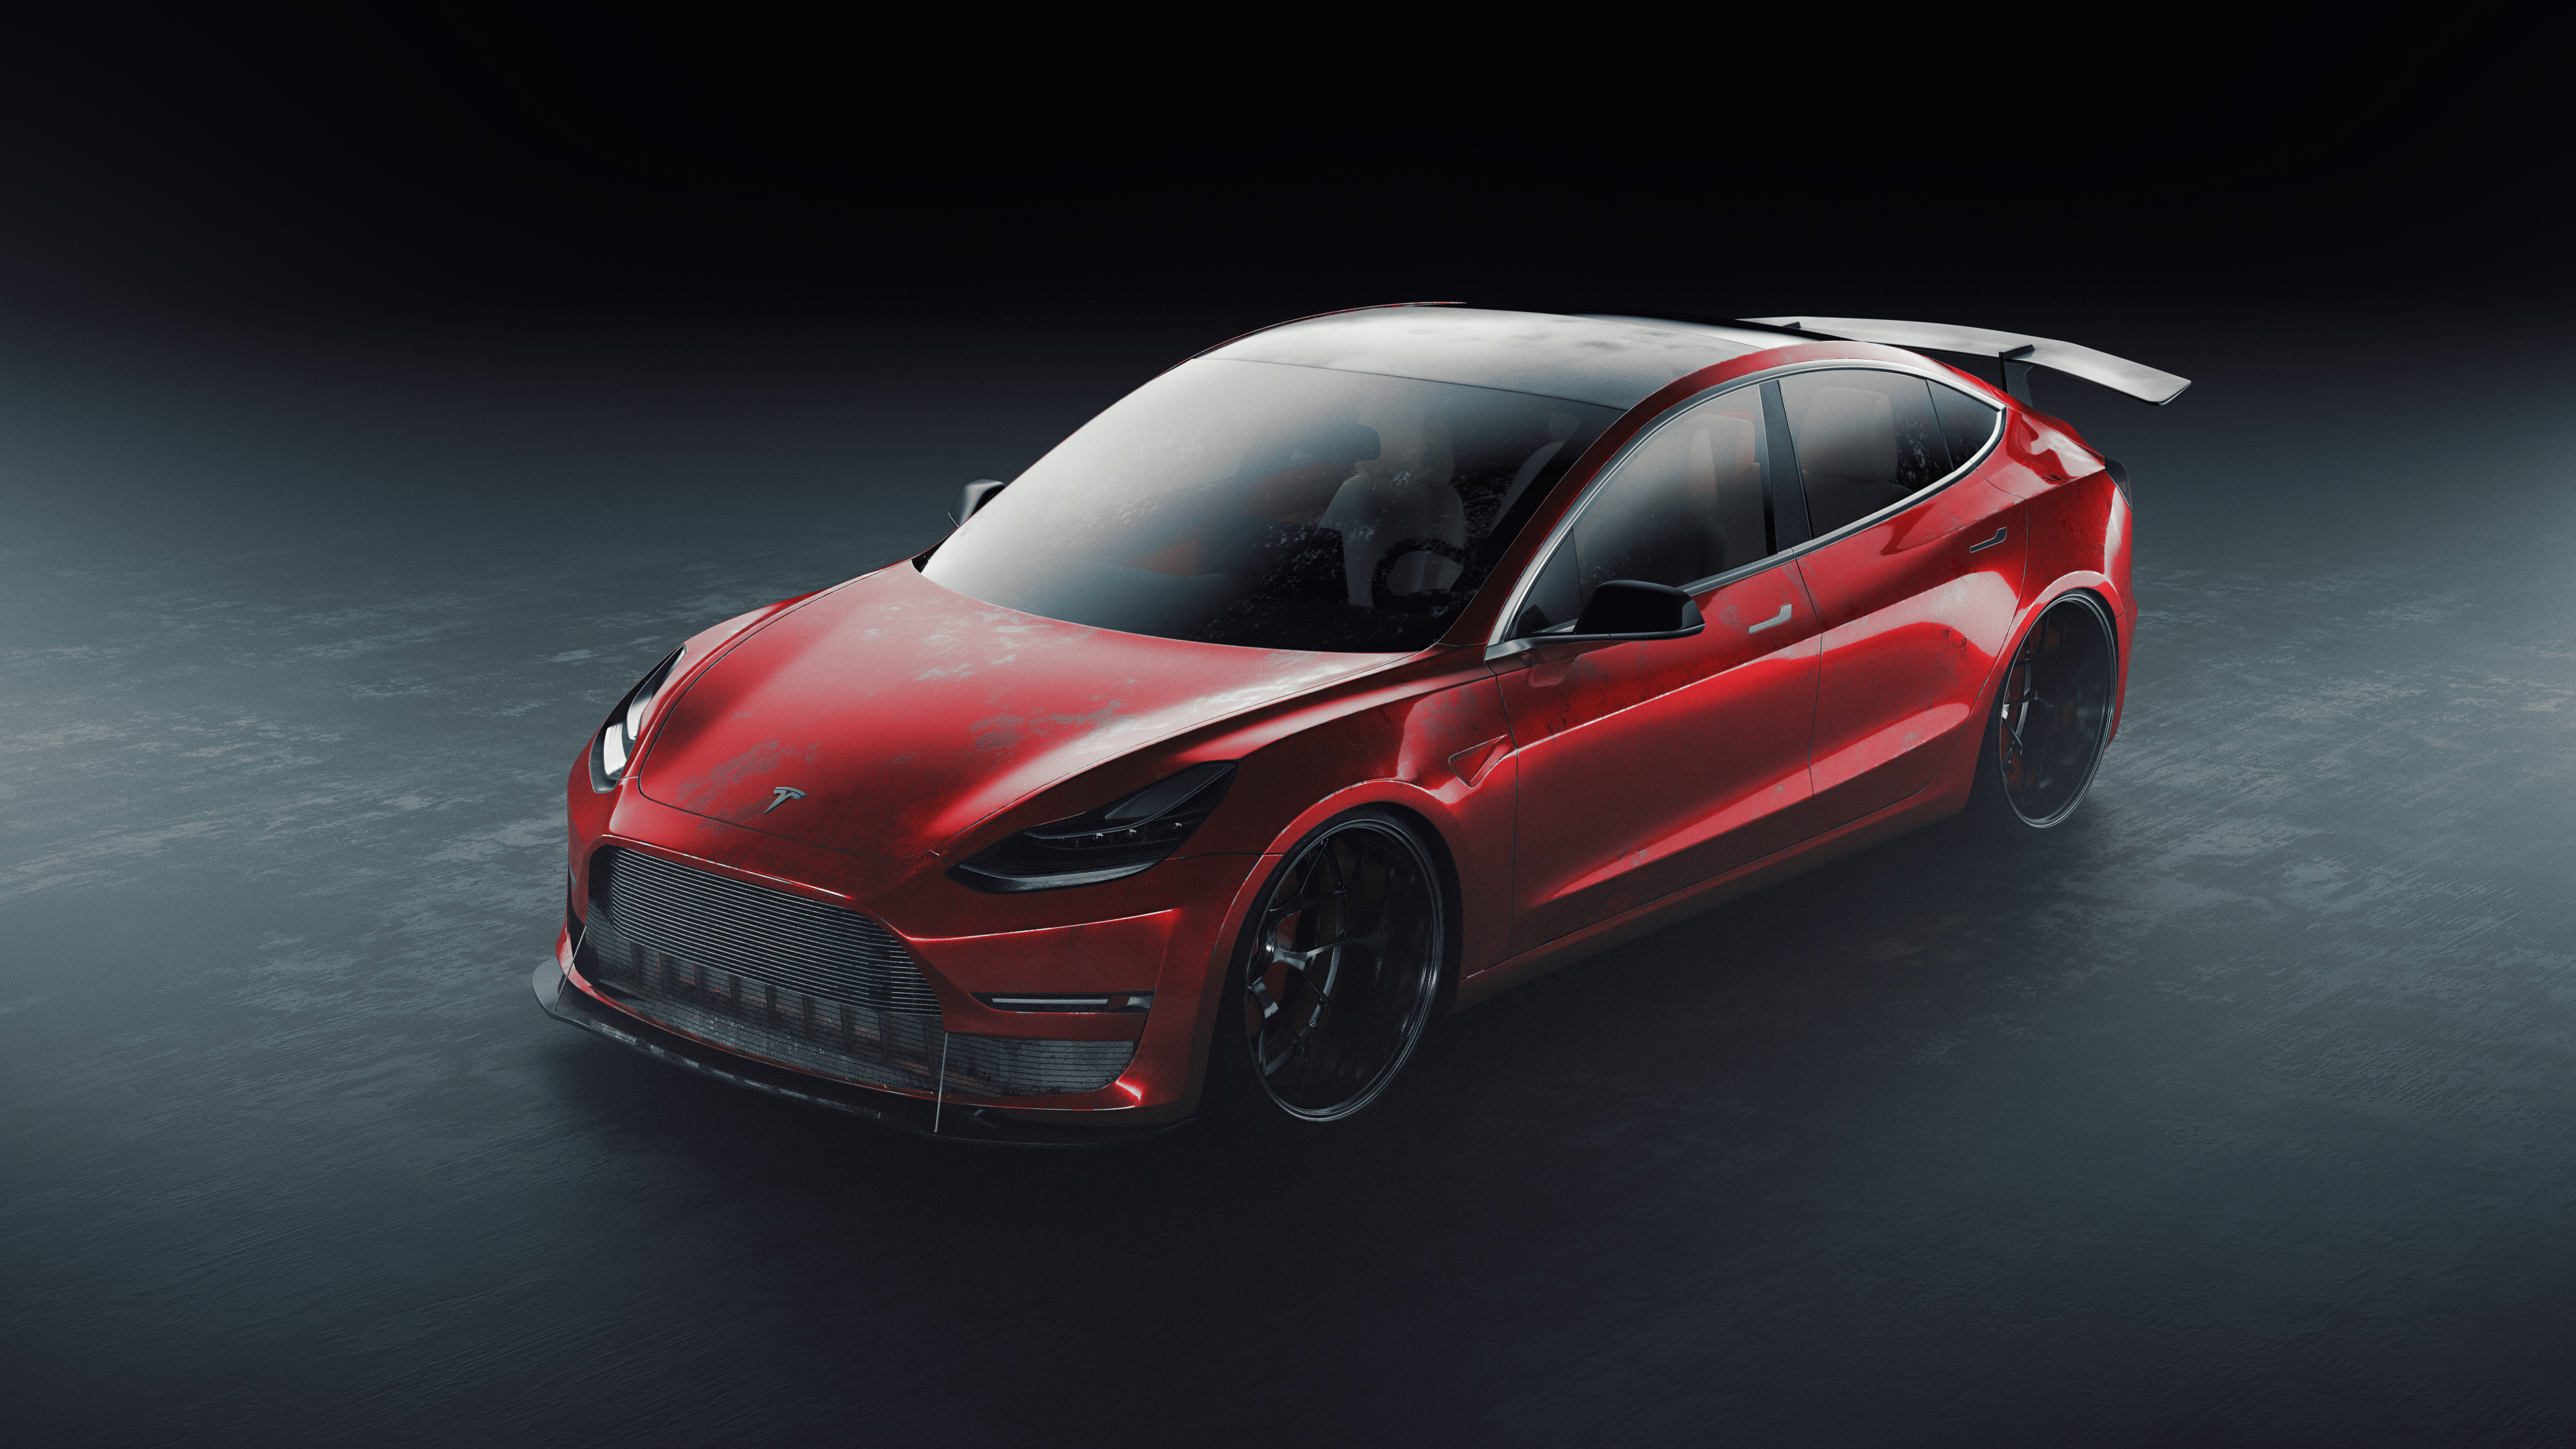 Tesla sport hd cars 4k wallpapers images backgrounds photos and pictures - Tesla wallpaper android ...